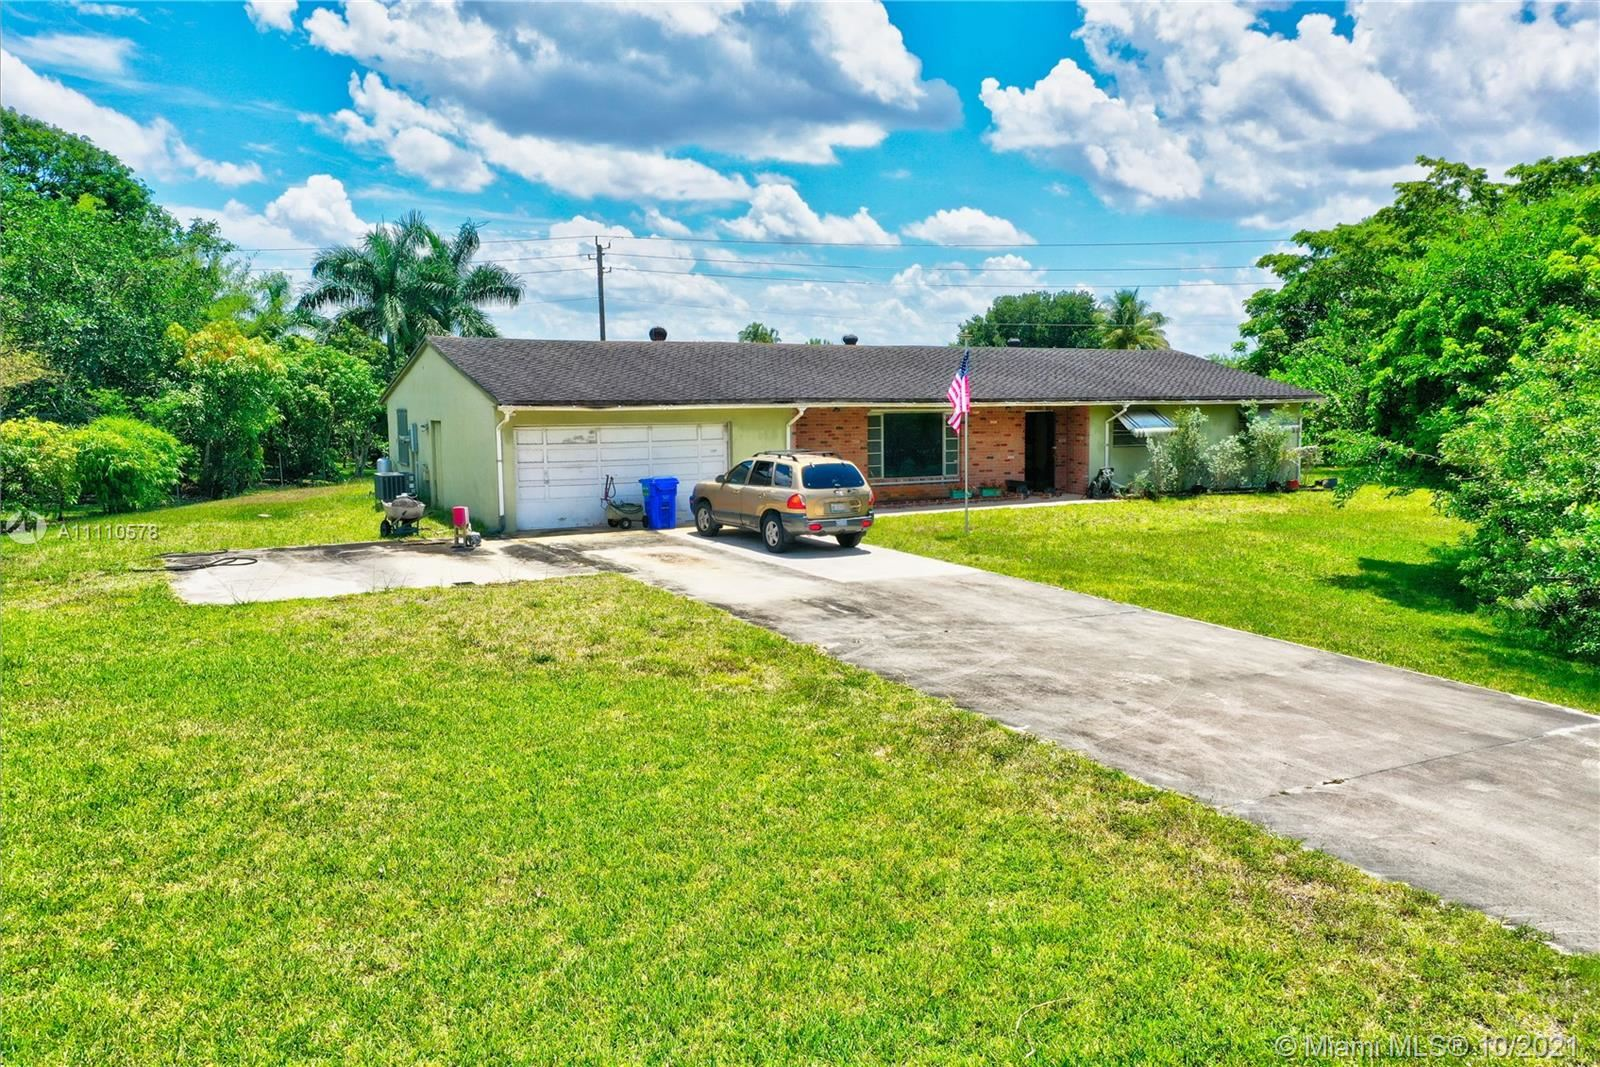 4850 SW 130th Ave, SouthWest Ranches, FL 33330 - #: A11110578